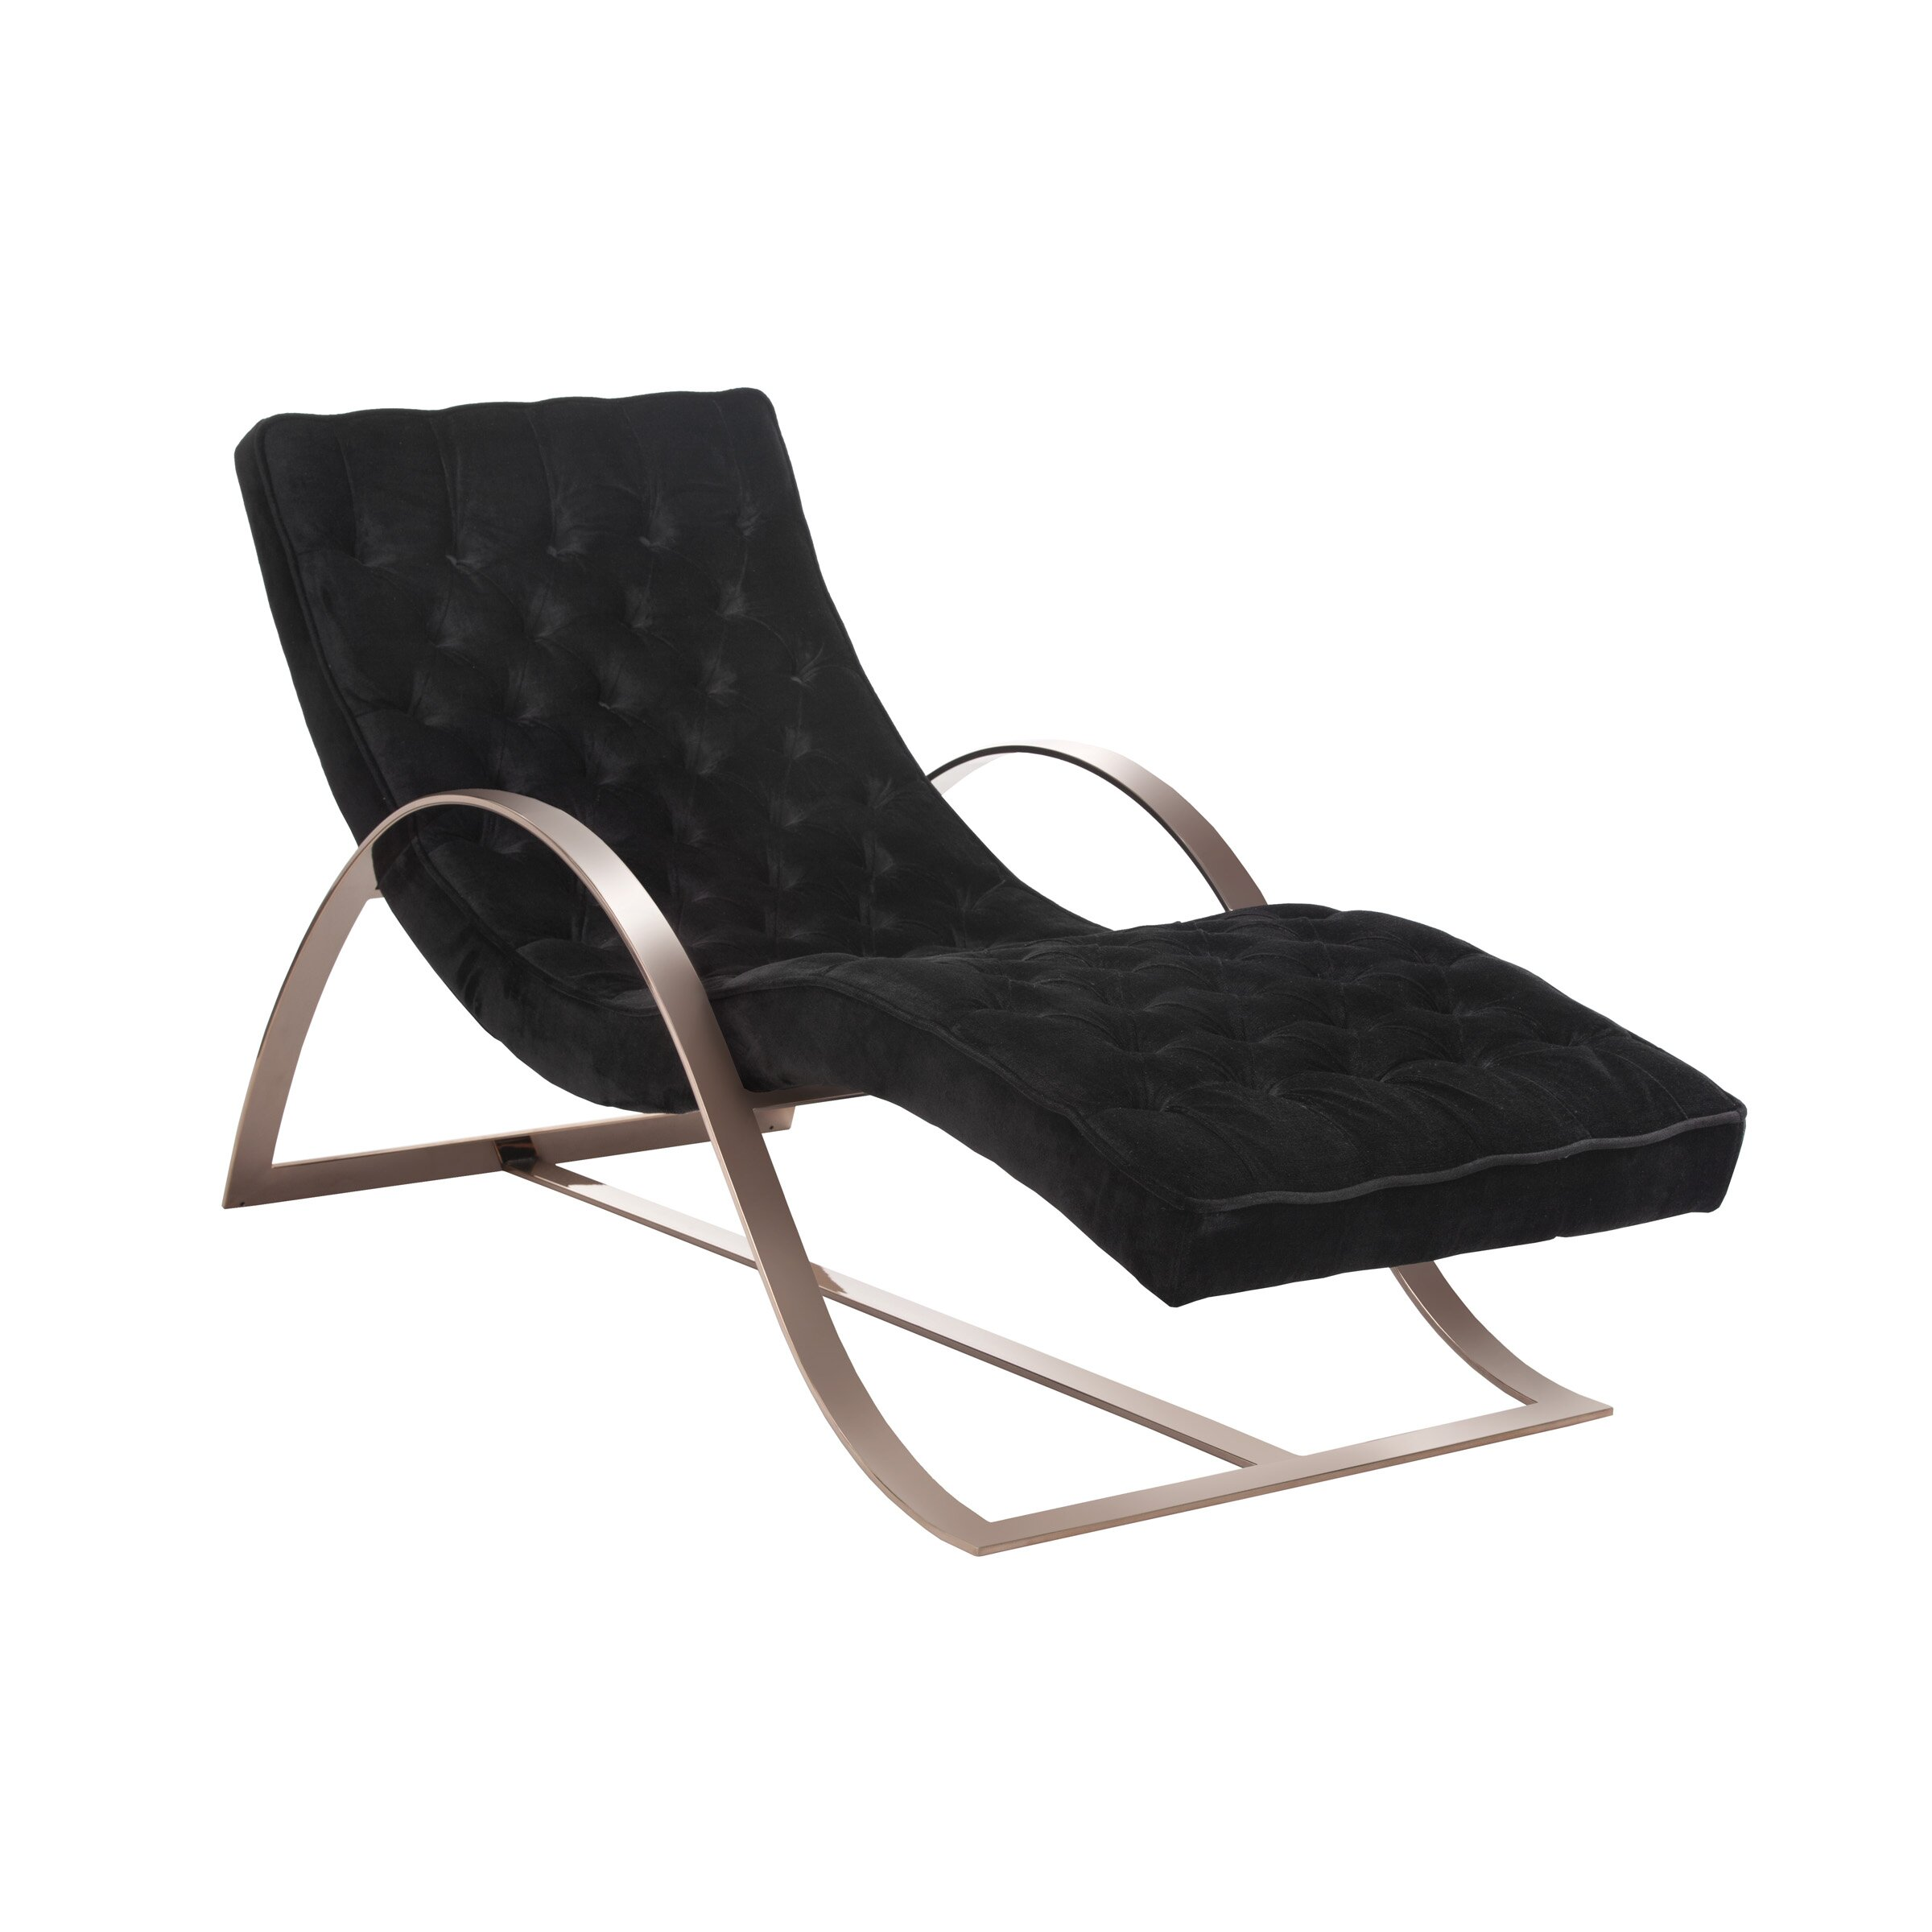 Corrigan studio sable chaise lounge for 2 chaise lounges